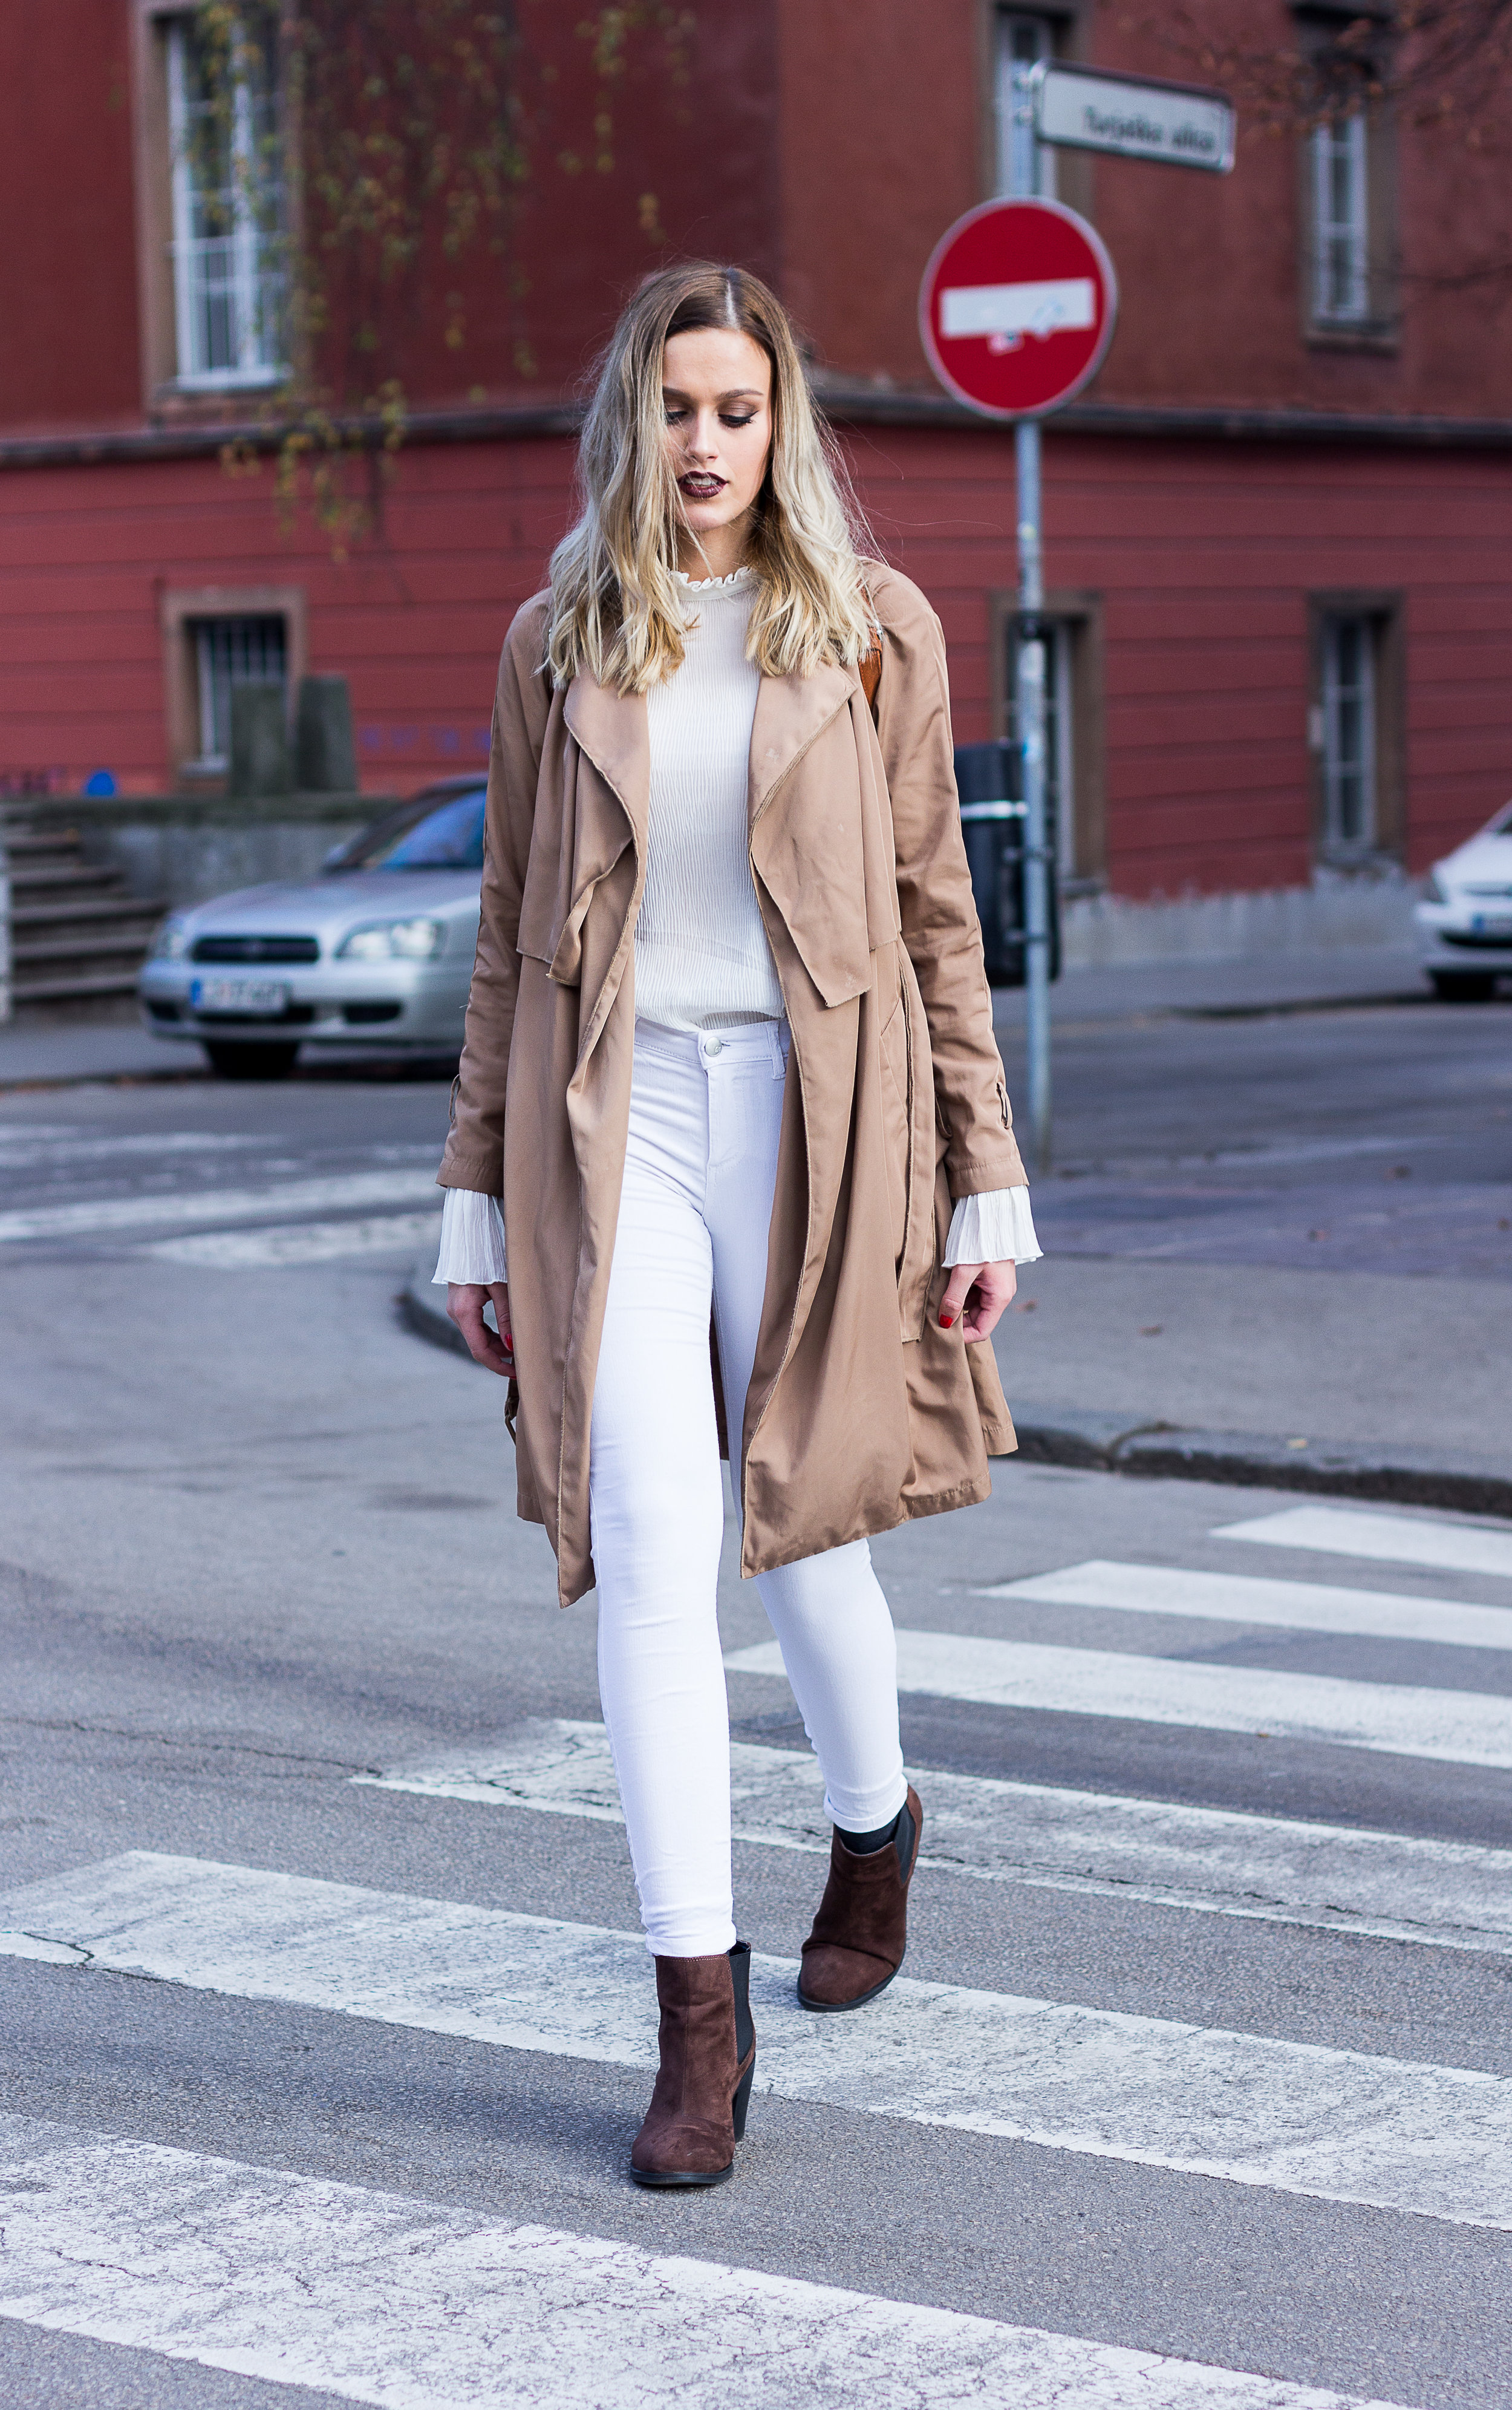 street style mainstreamchic boo